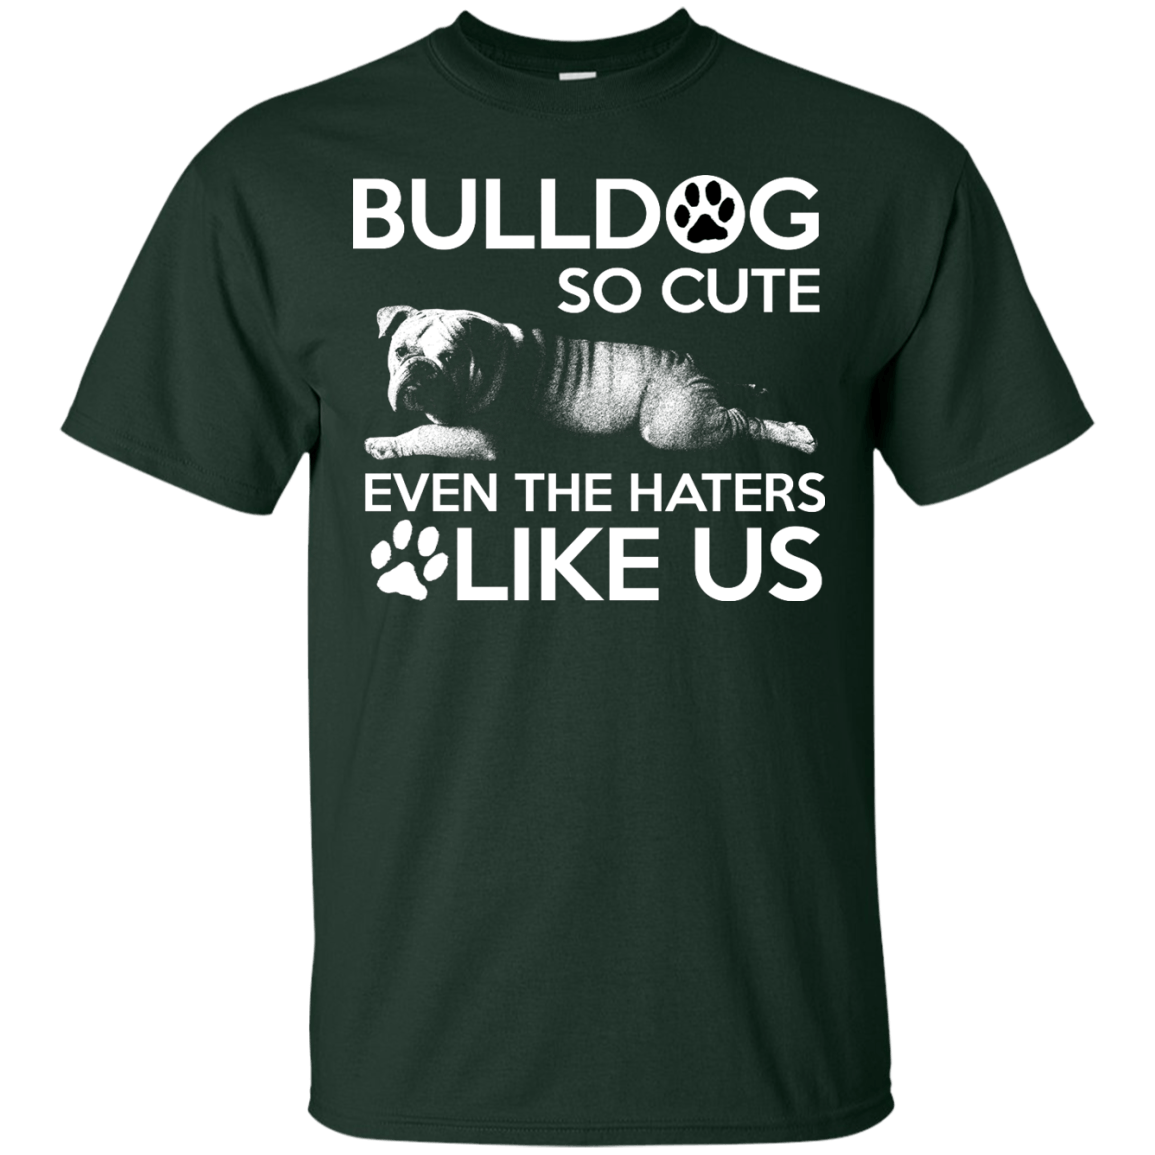 Bulldog So Cute - ONLINEPRESALES